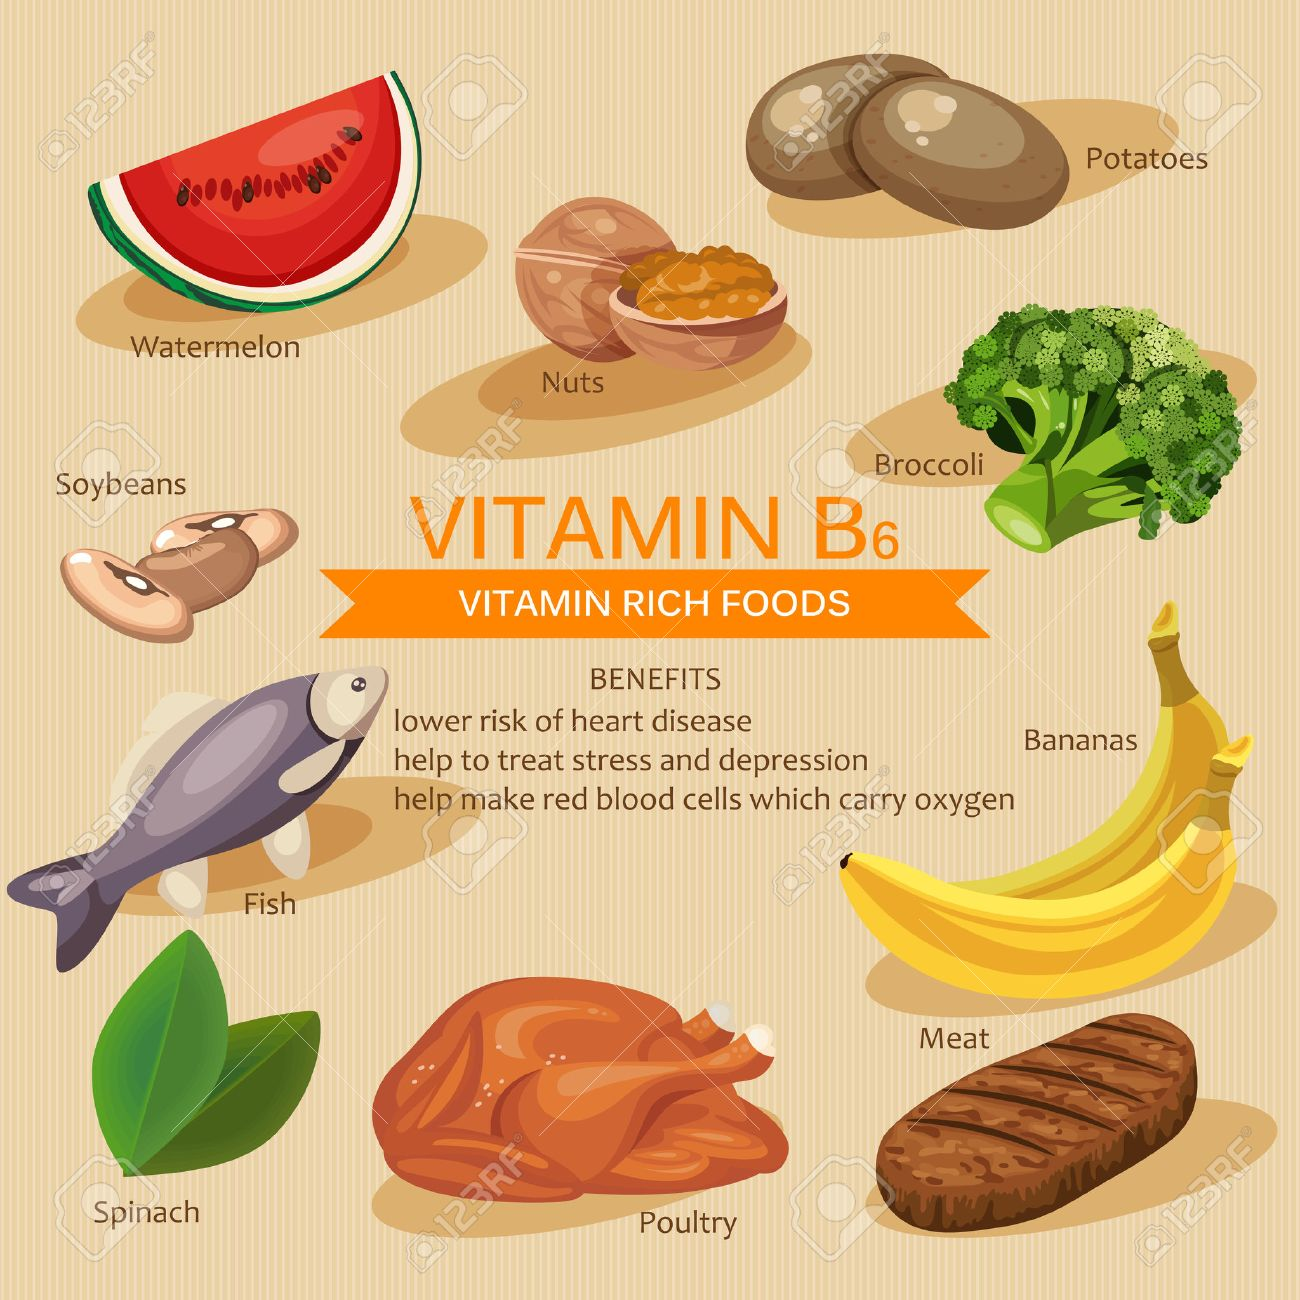 Vitamins and Minerals foods Illustration. Vector set of vitamin rich foods. Vitamin B6. Bananas, spinach, meat, nuts, poultry, fish, potatoes, broccoli and watermelon - 51018578